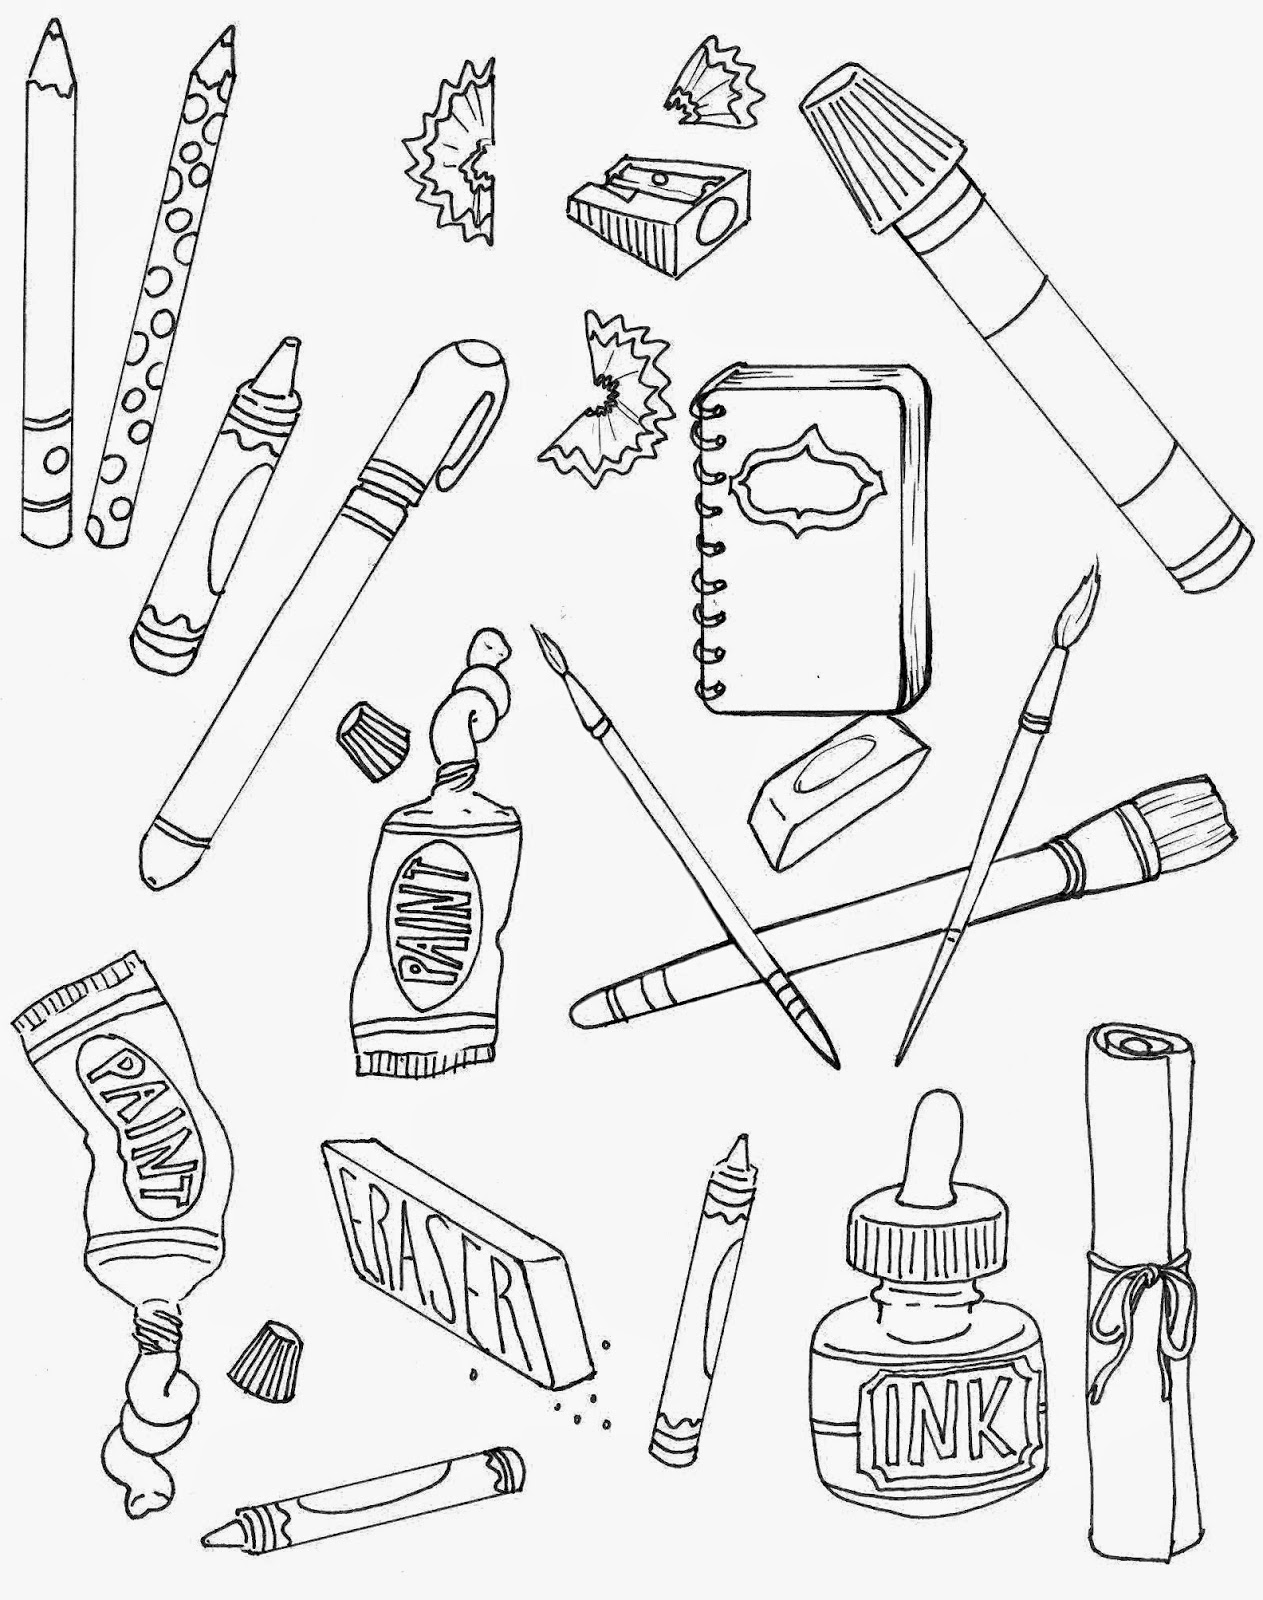 Art Supplies Clipart Black And White (96+ images in Collection) Page 2.